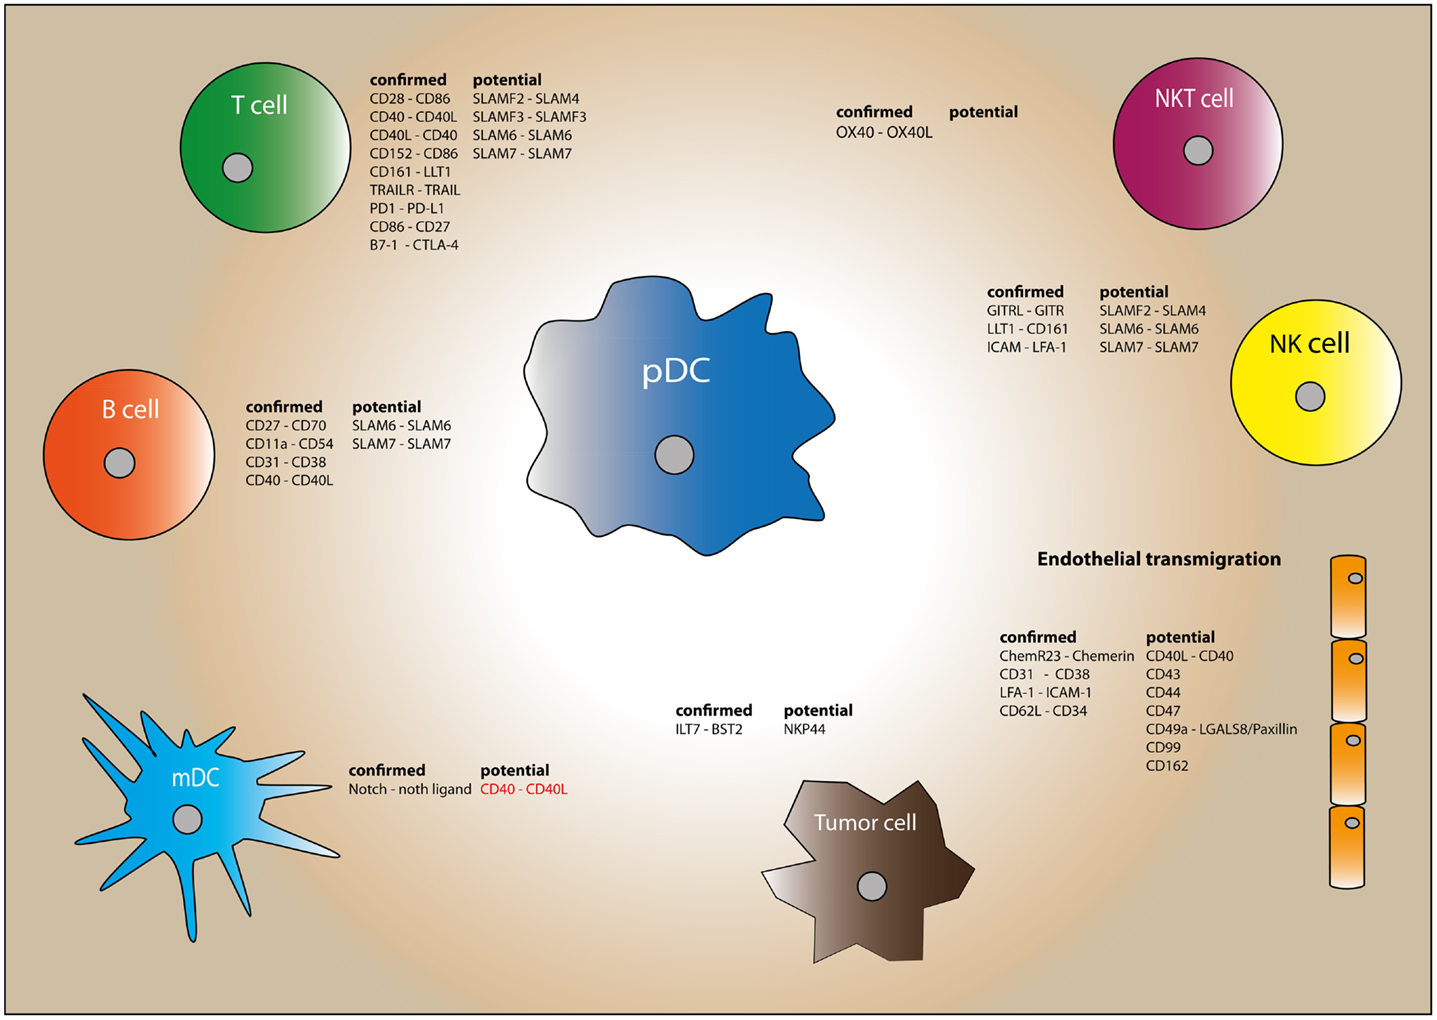 Dendritic cell maturation